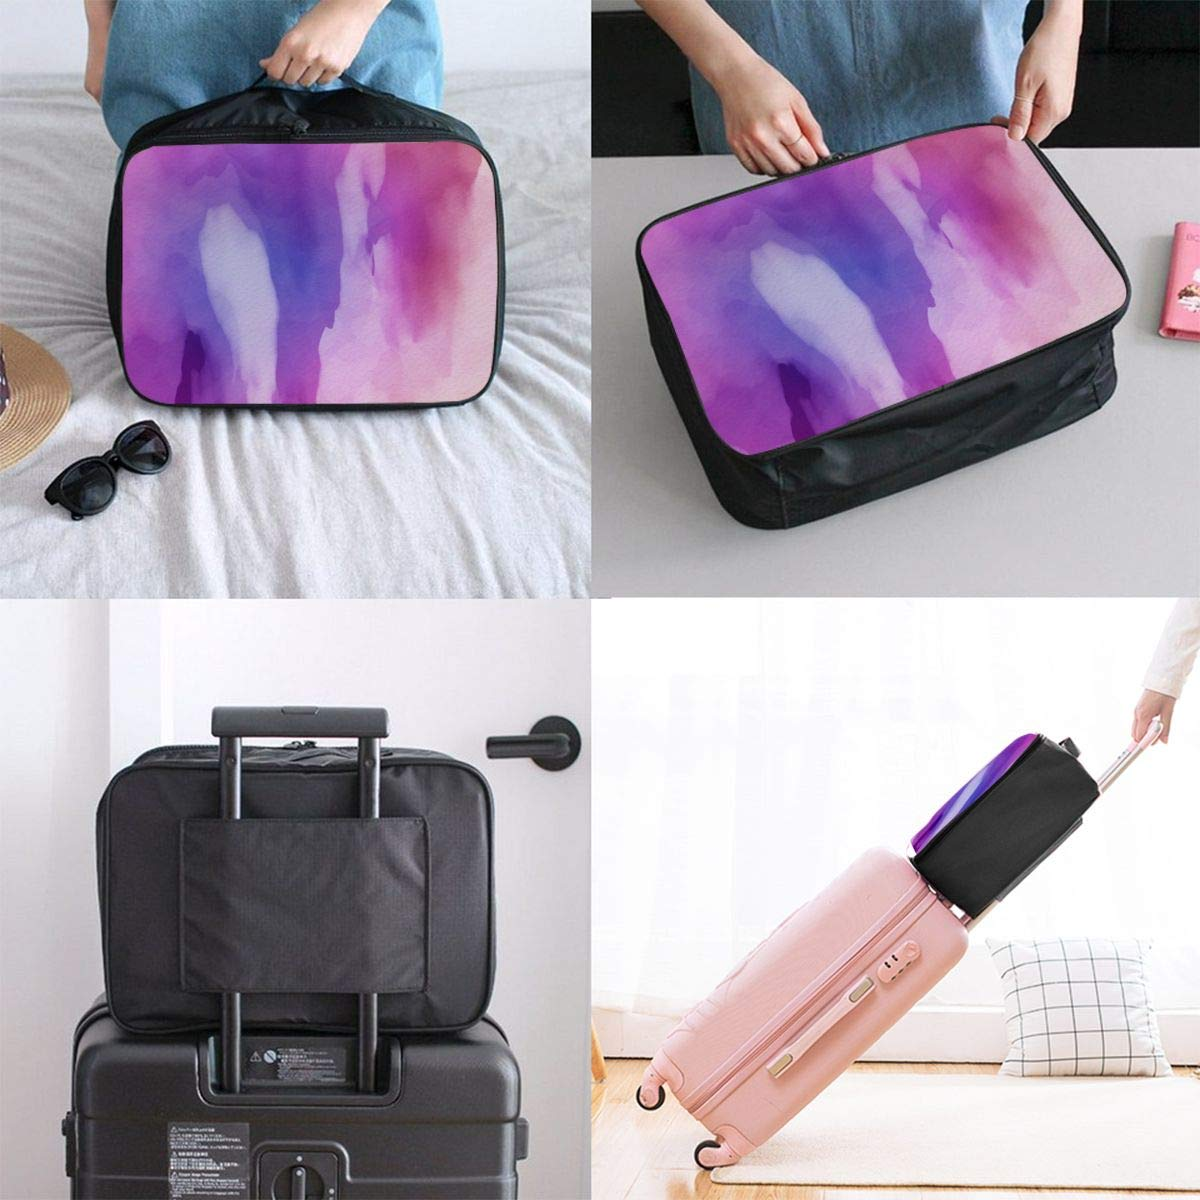 Texture Art Dream Travel Lightweight Waterproof Foldable Storage Carry Luggage Large Capacity Portable Luggage Bag Duffel Bag